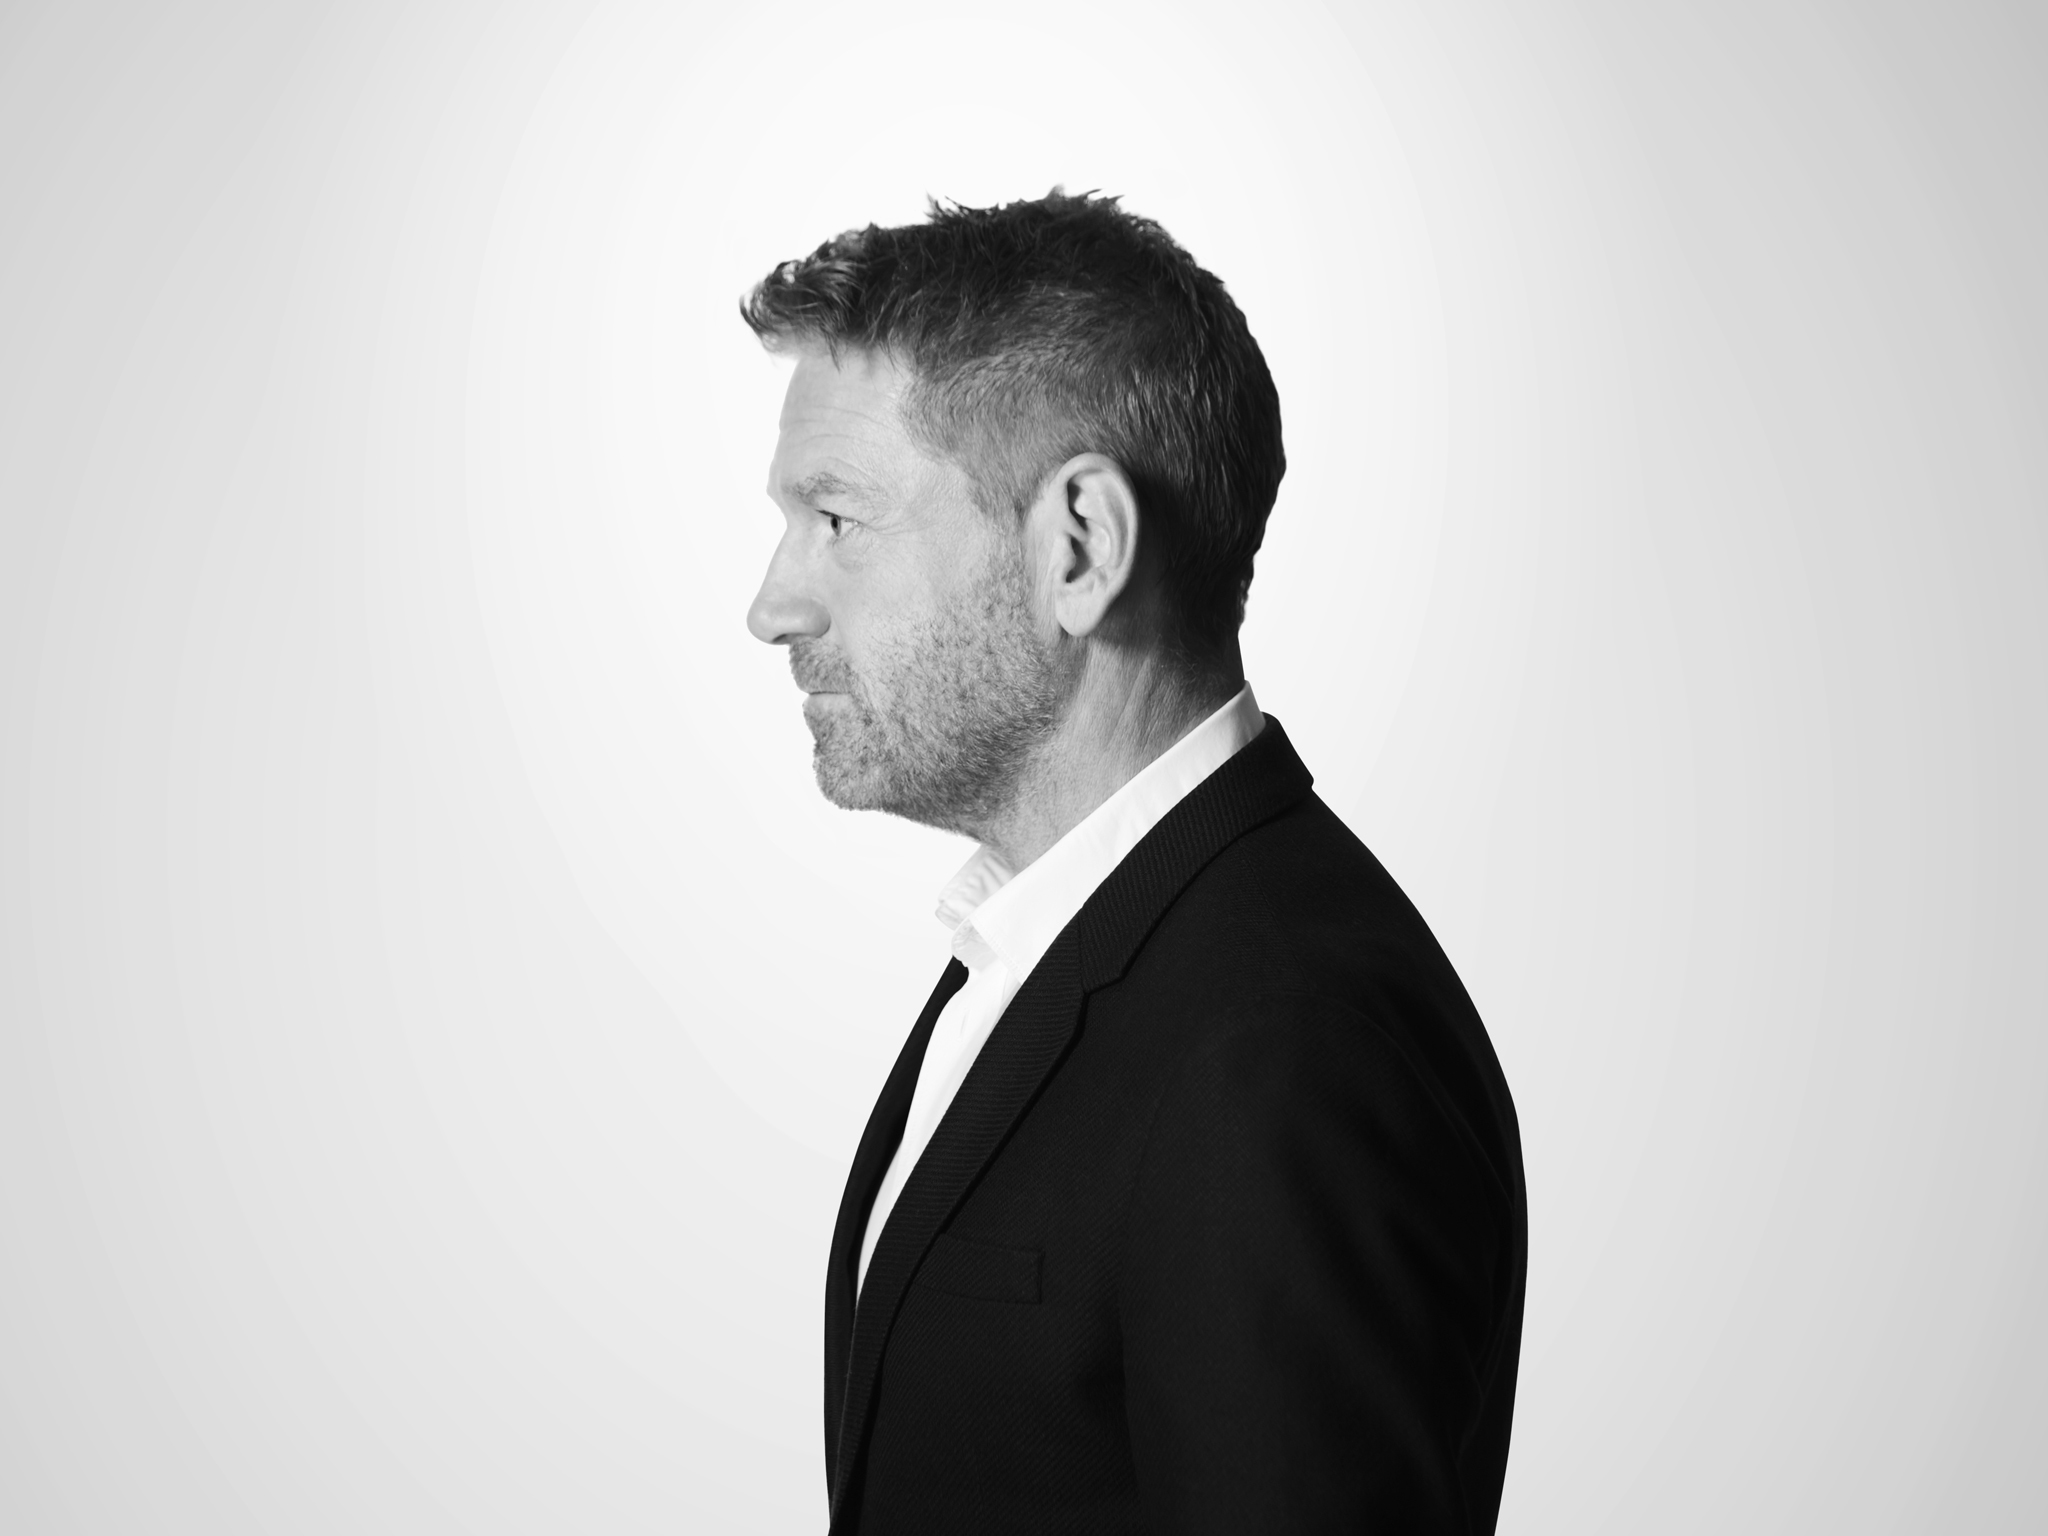 Kenneth Branagh on his big return to the London stage